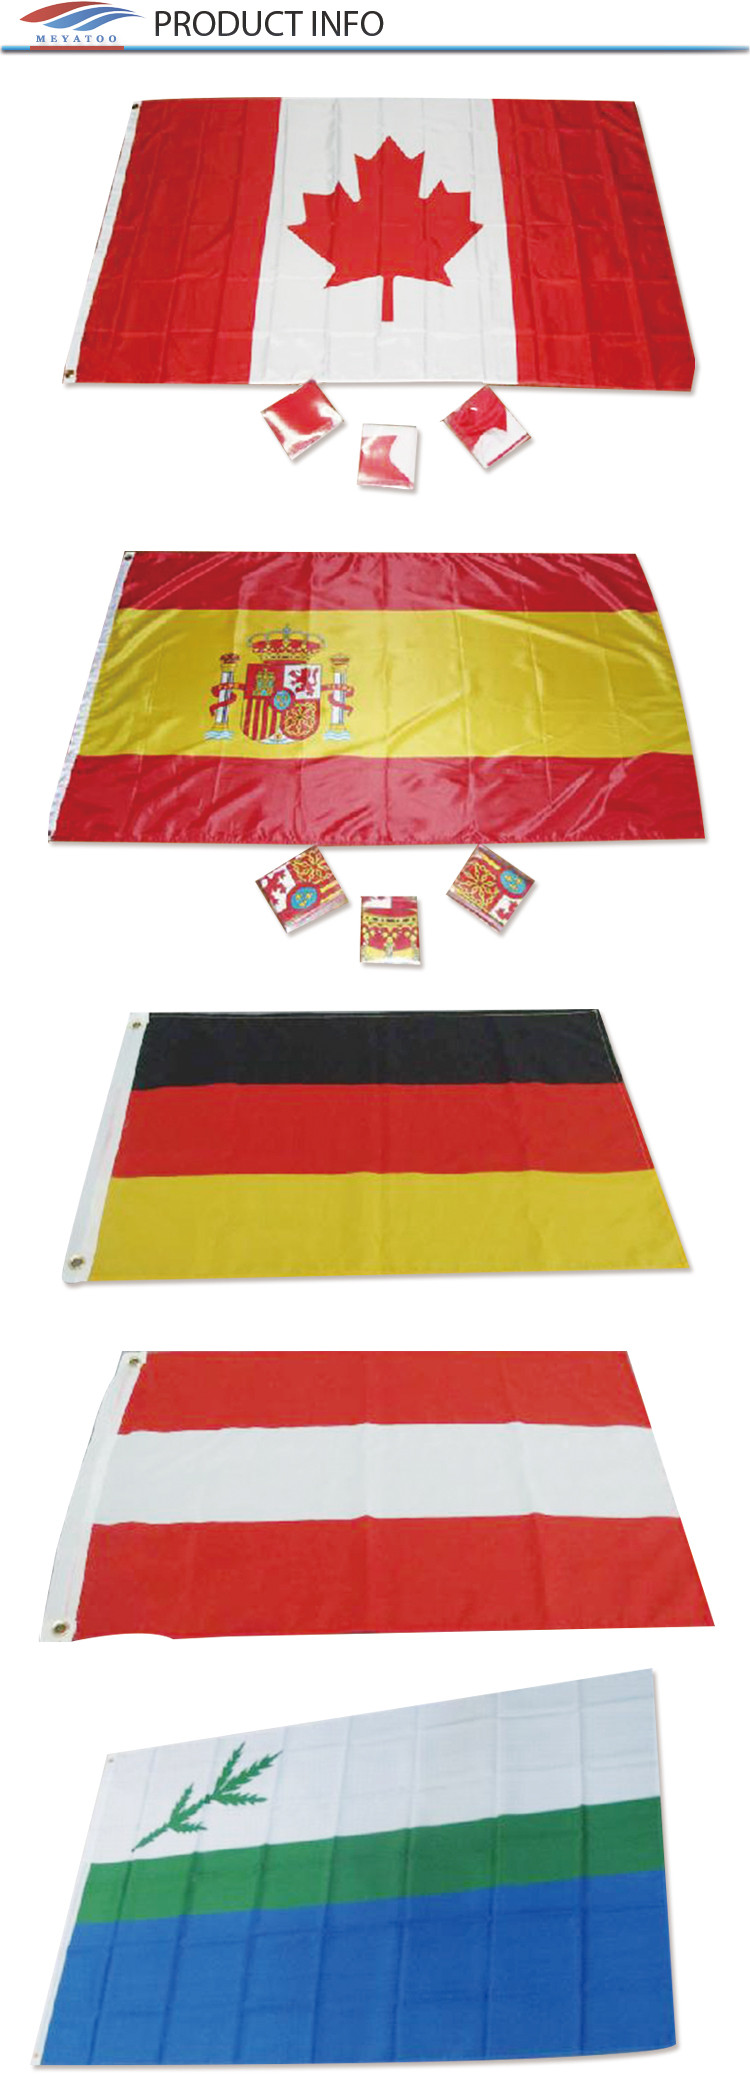 Custom Made Polyester Nation 3x5 Nederland Holland Flags - Buy Holland  Flags,Holland Banner,National Flags Product on Alibaba com